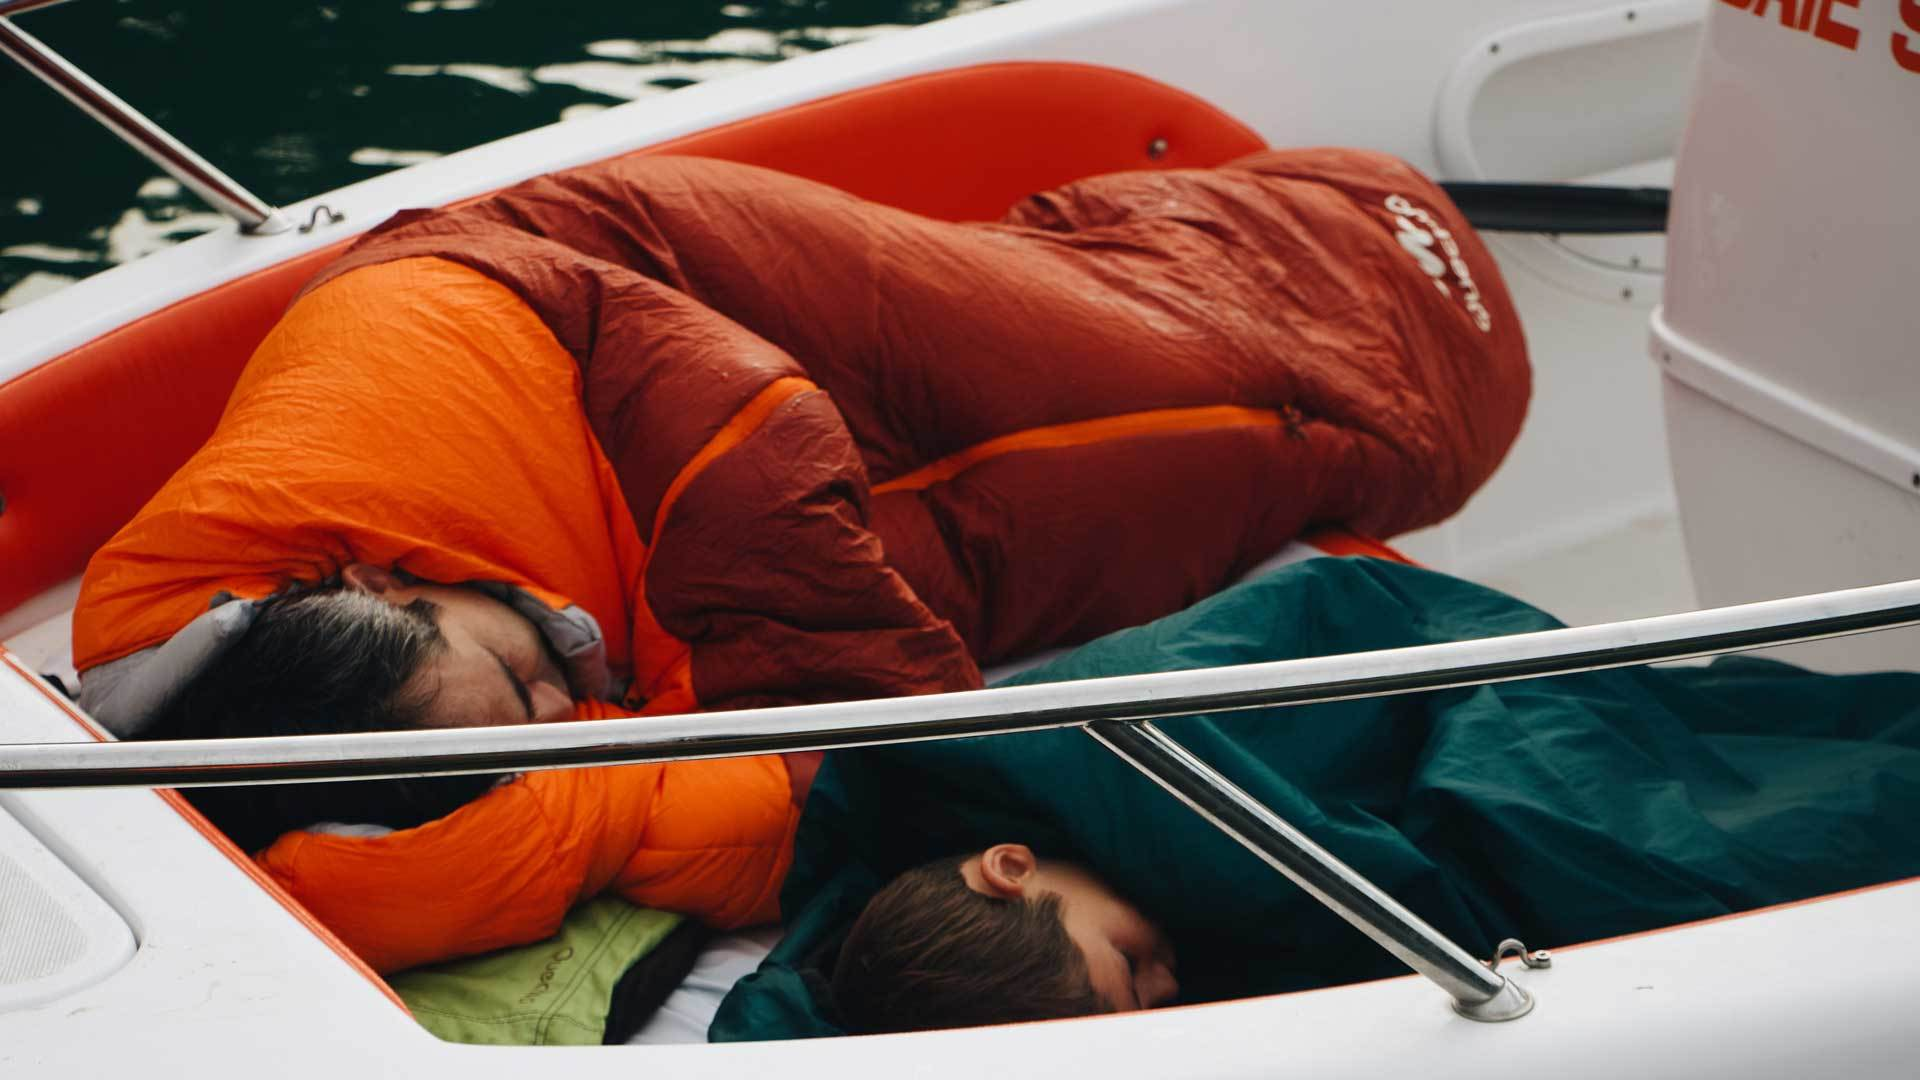 Buying-a-Sleeping-Bag-on-99insight